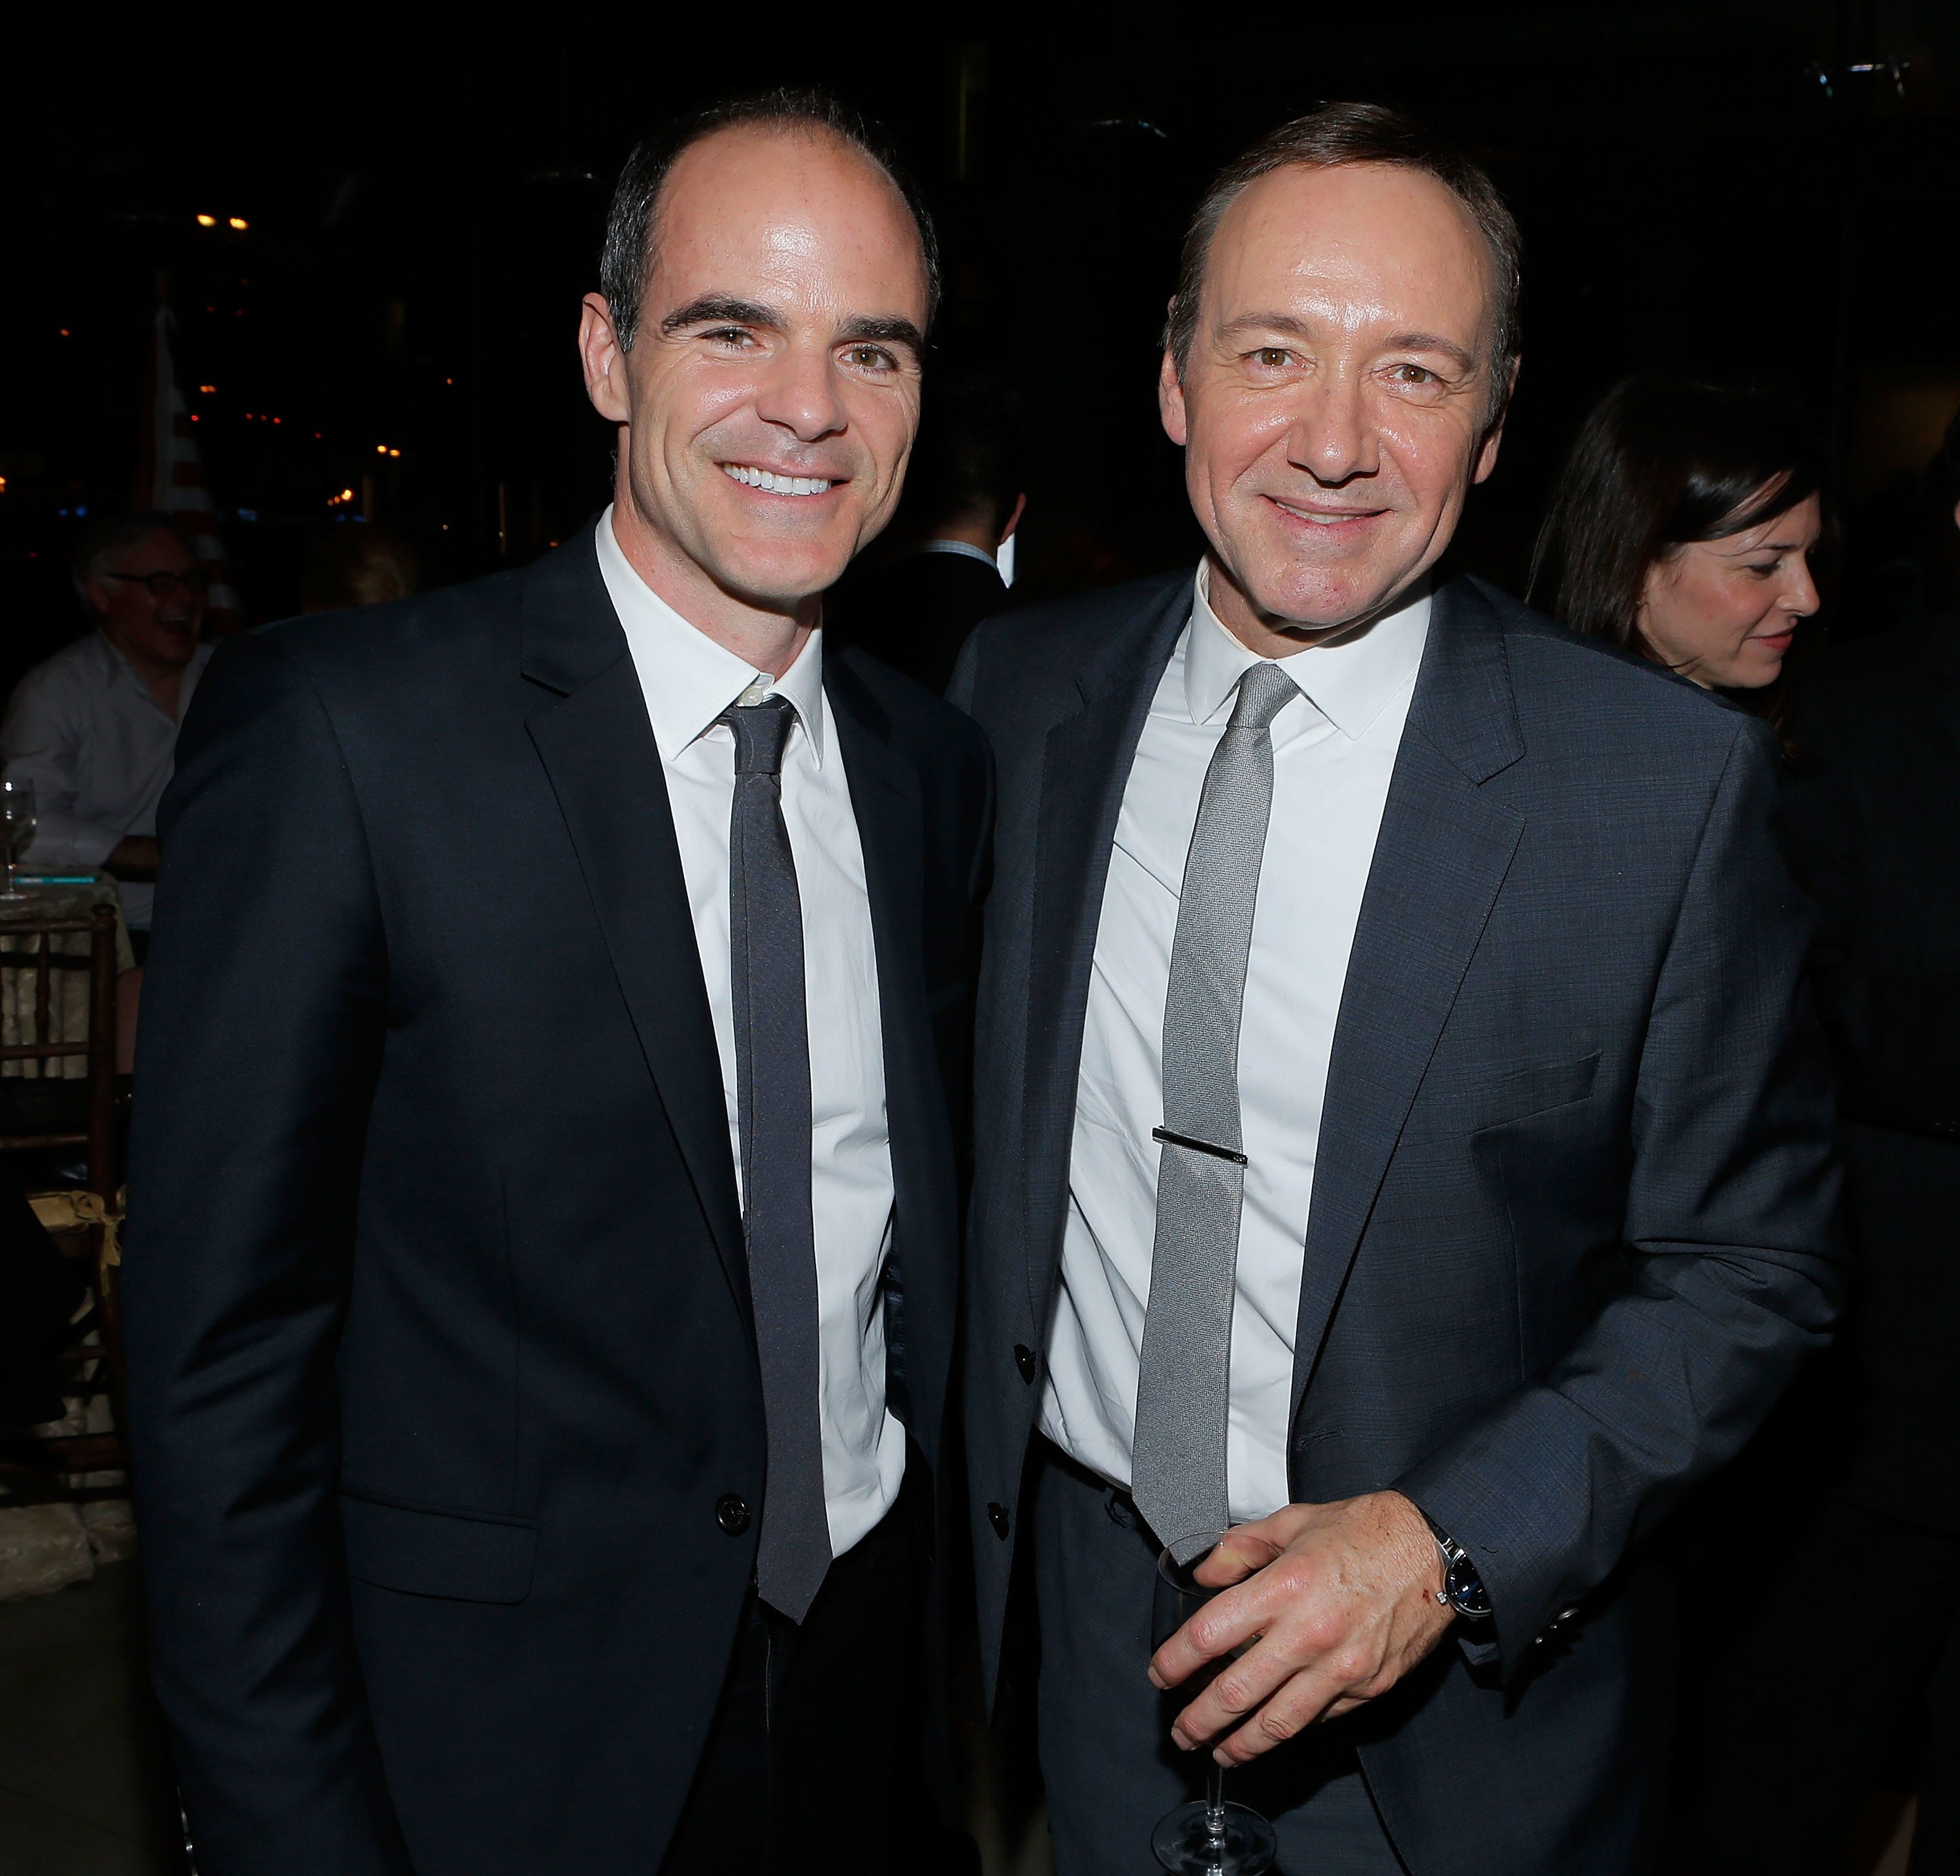 NEW YORK, NY - JANUARY 30:  Actors Michael Kelly and Kevin Spacey attend Netflix's 'House Of Cards' New York Premiere After Party at Alice Tully Hall on January 30, 2013 in New York City.  (Photo by Jemal Countess/Getty Images)